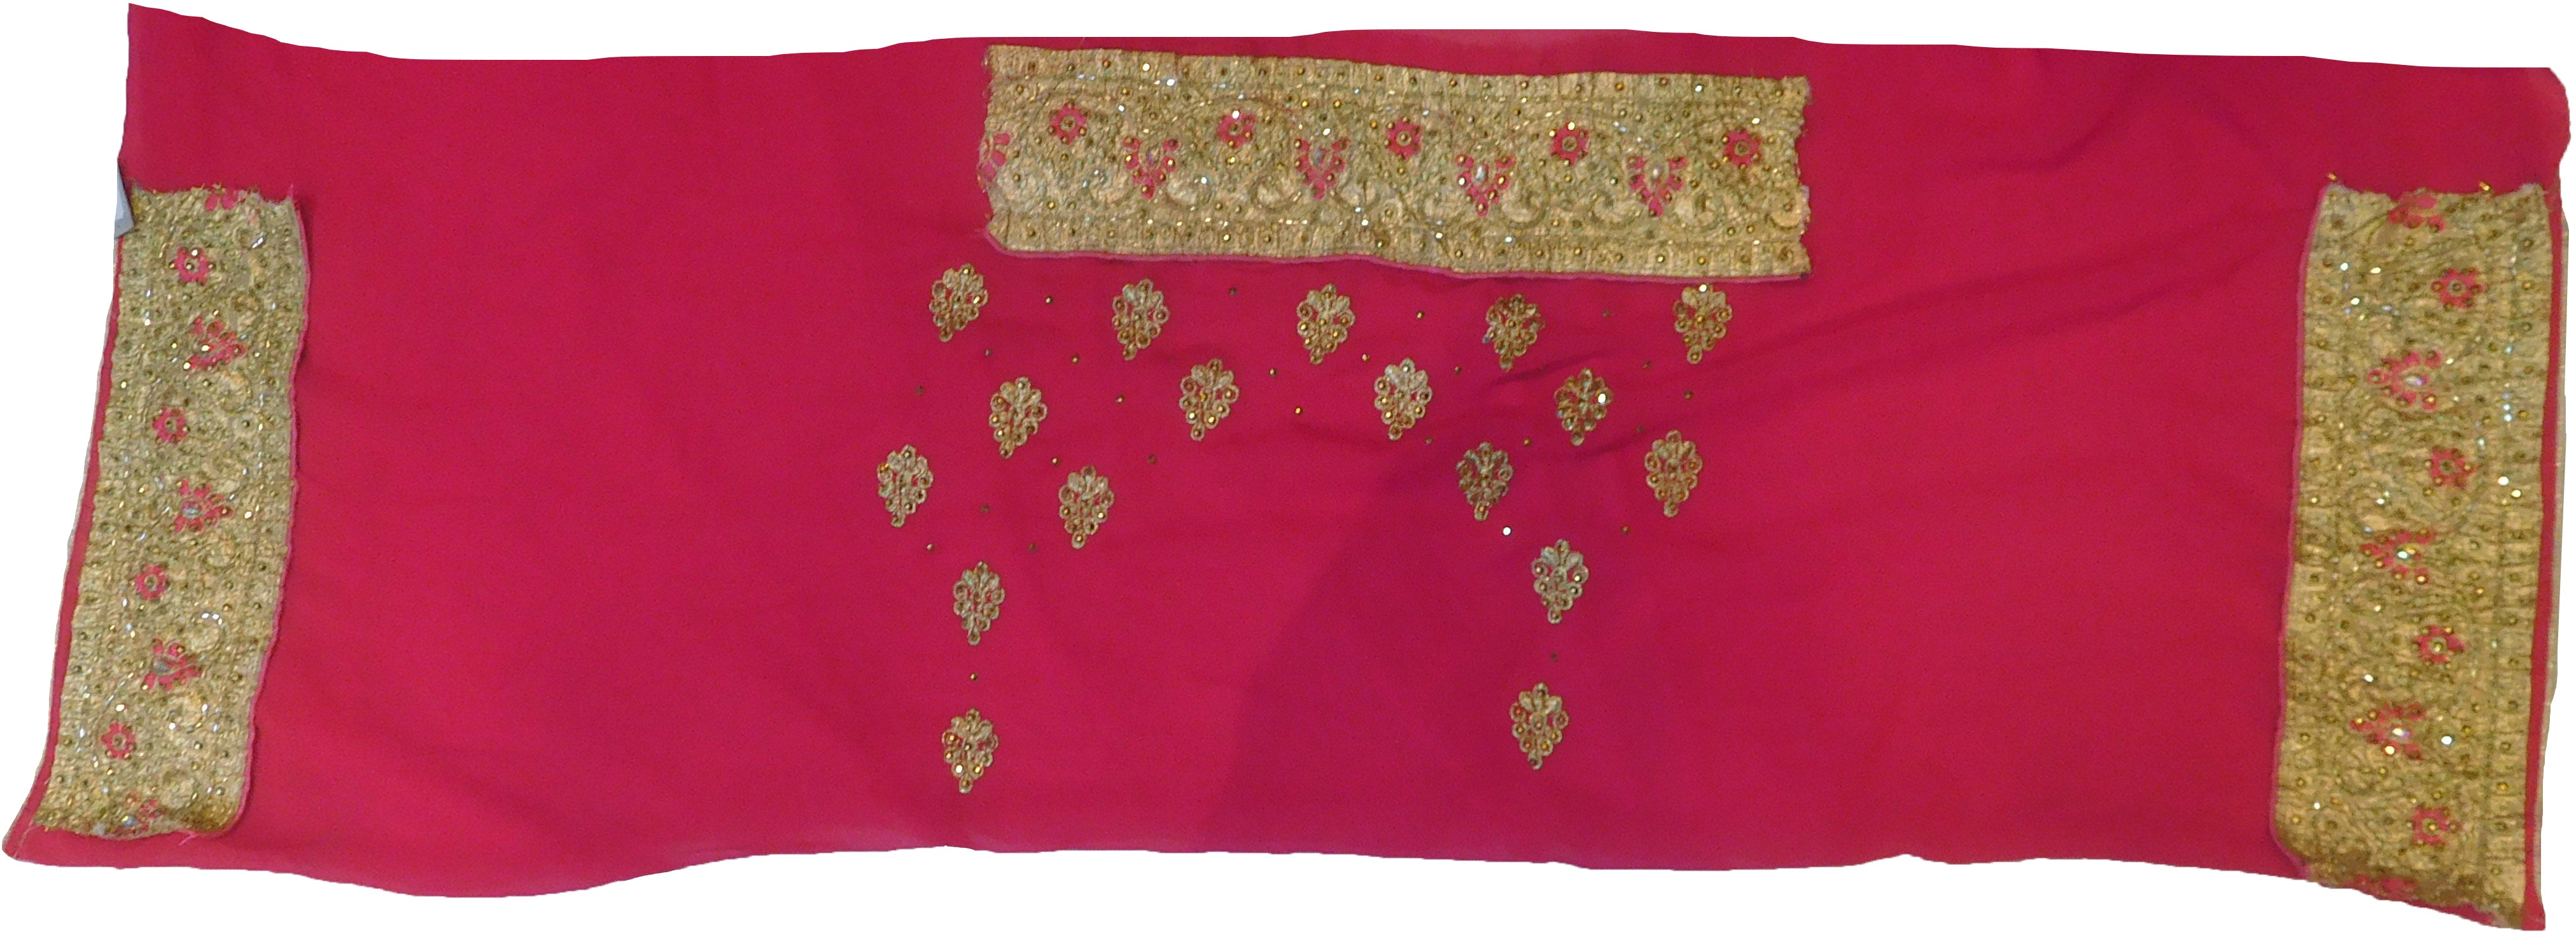 SMSAREE Pink & Golden Designer Wedding Partywear Georgette Stone Thread & Zari Hand Embroidery Work Bridal Saree Sari With Blouse Piece F384